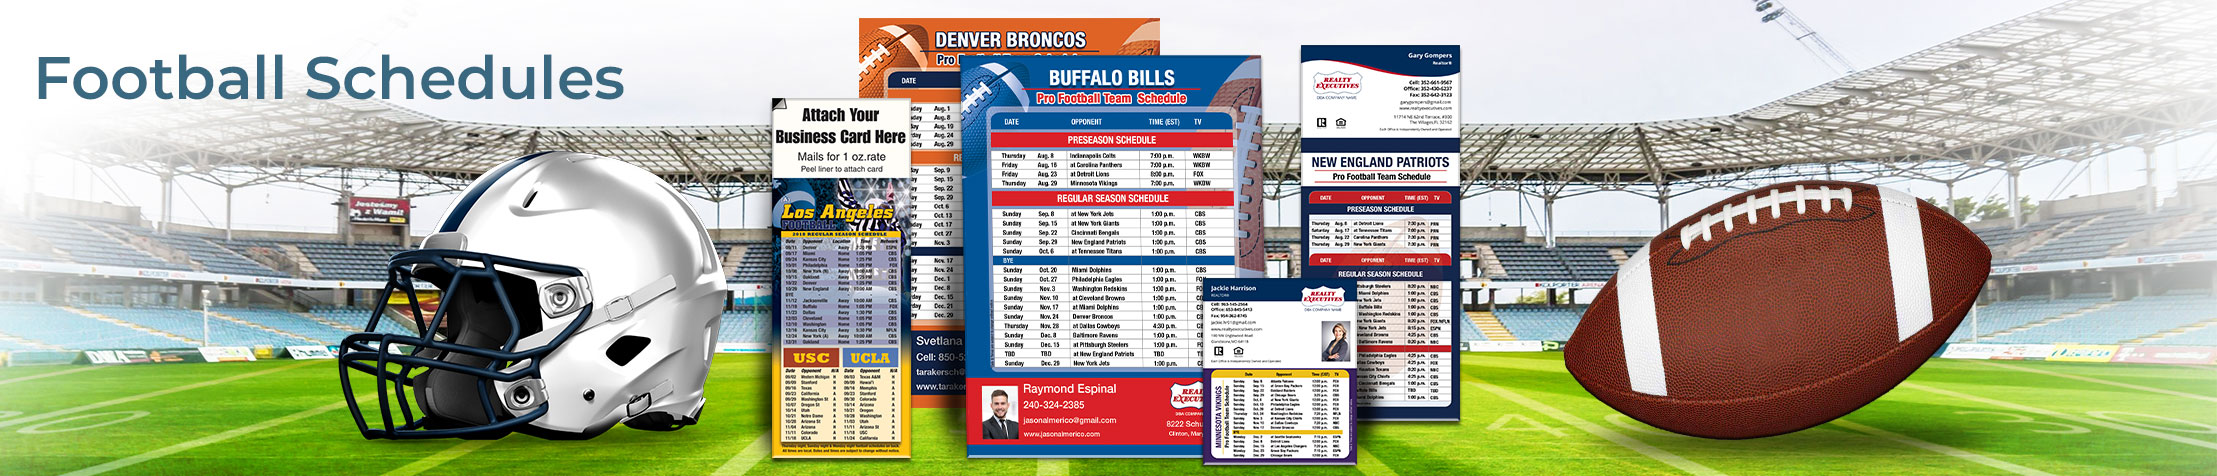 Realty Executives Real Estate Football Schedules - Realty Executives personalized football schedules | BestPrintBuy.com